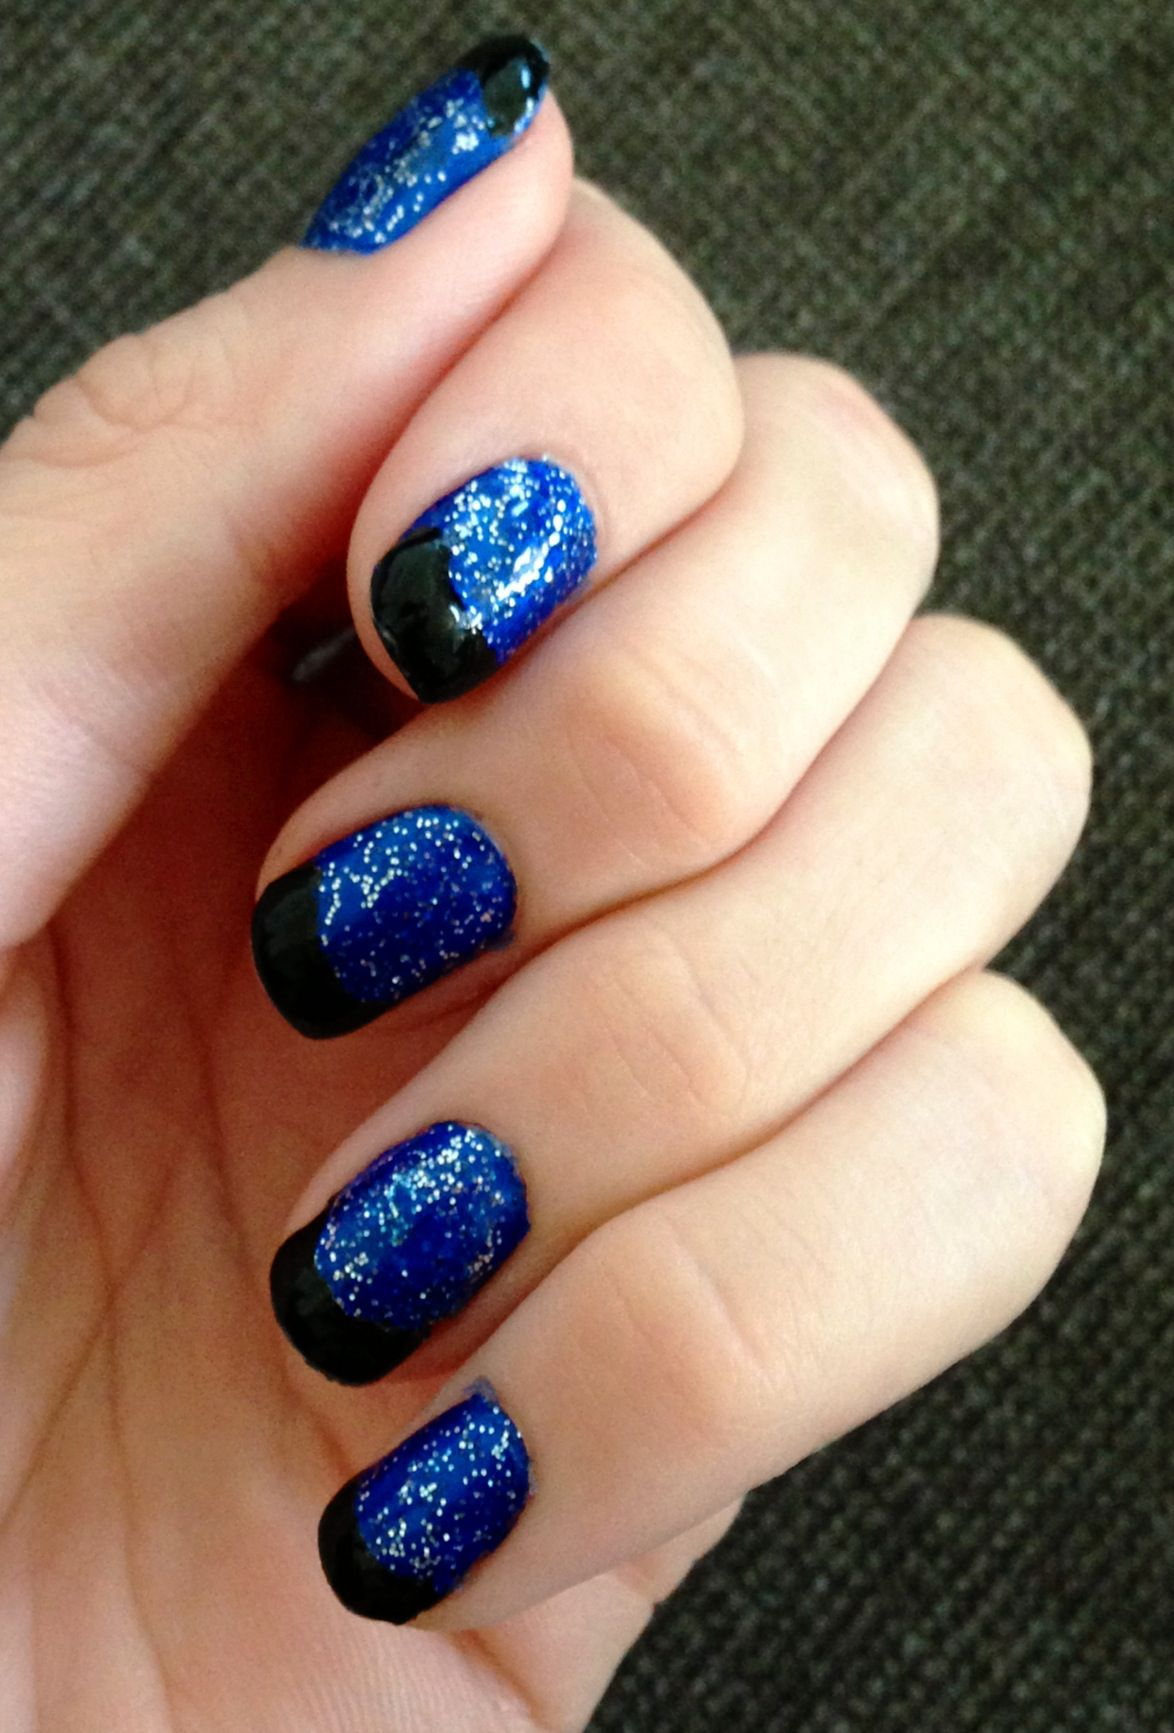 Nails This Week - Starry French Tips - Nails For Nickels